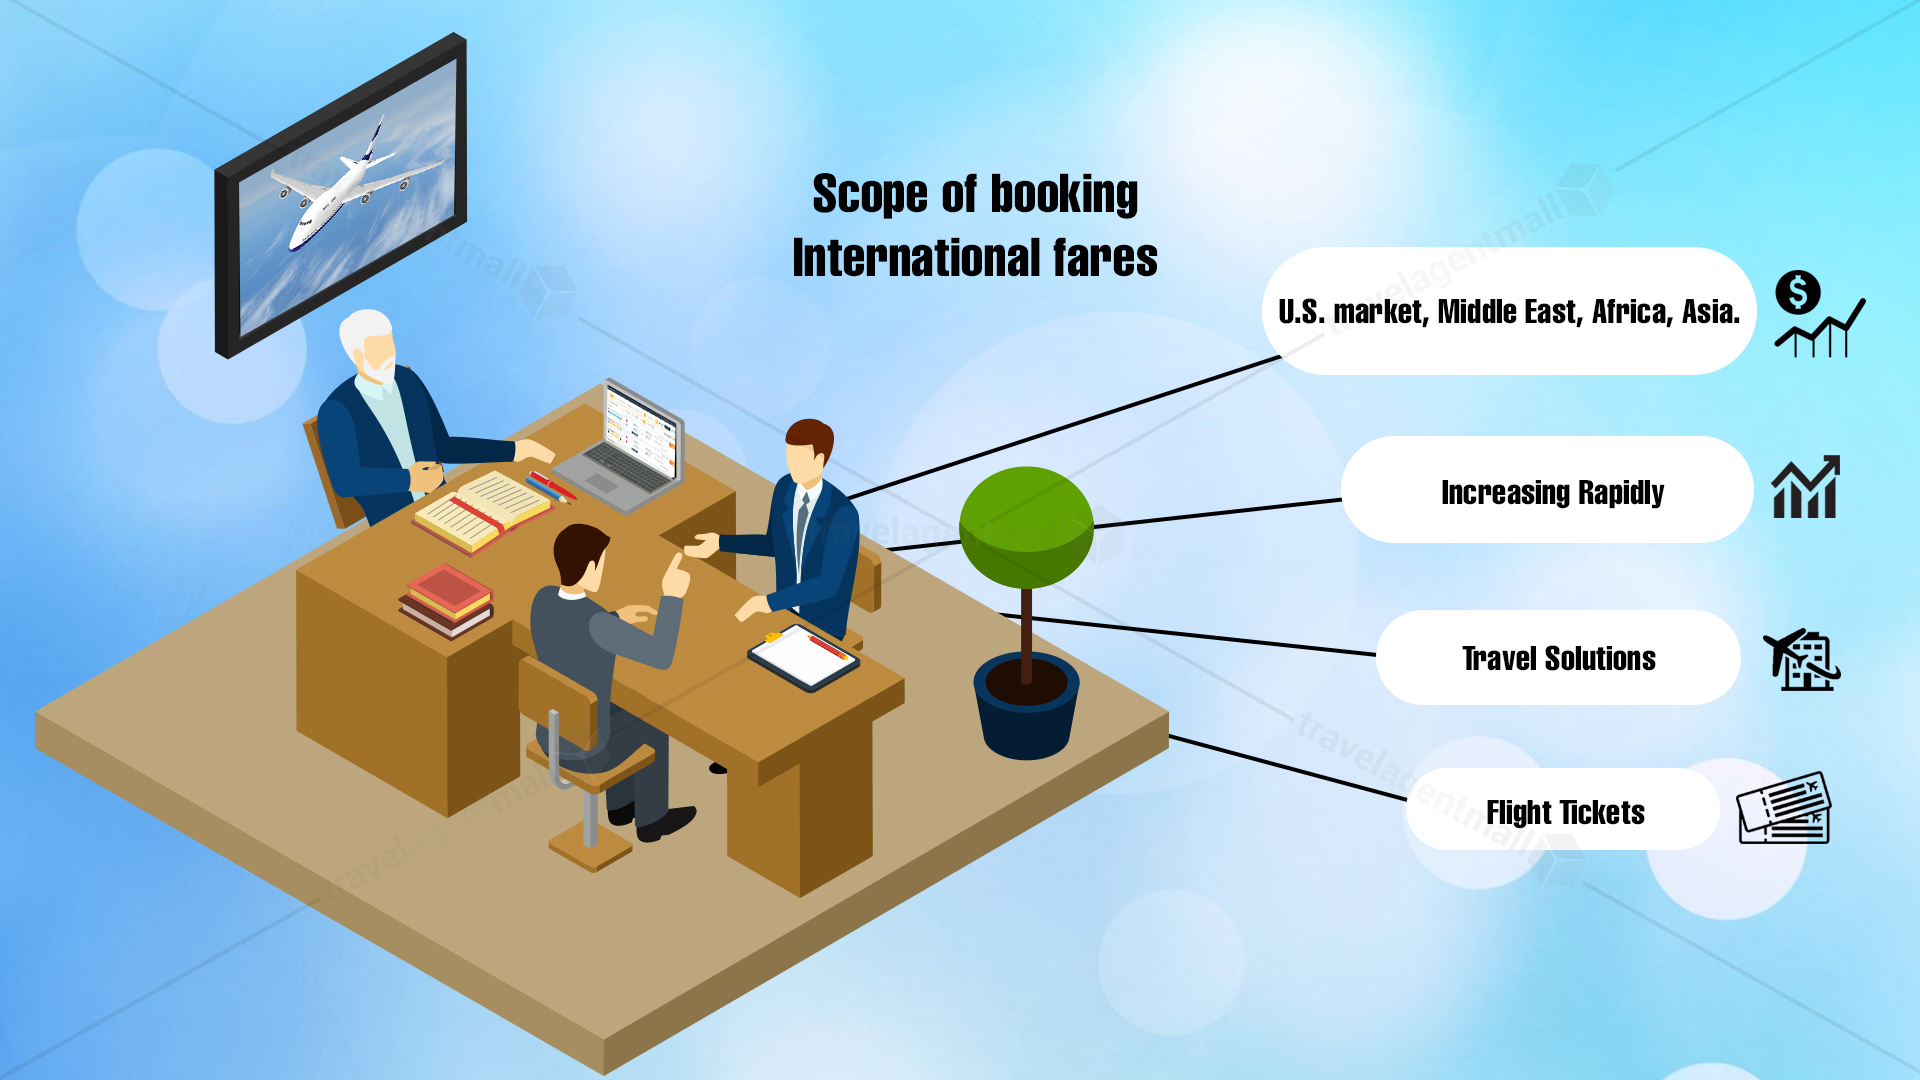 Scope of booking International fares